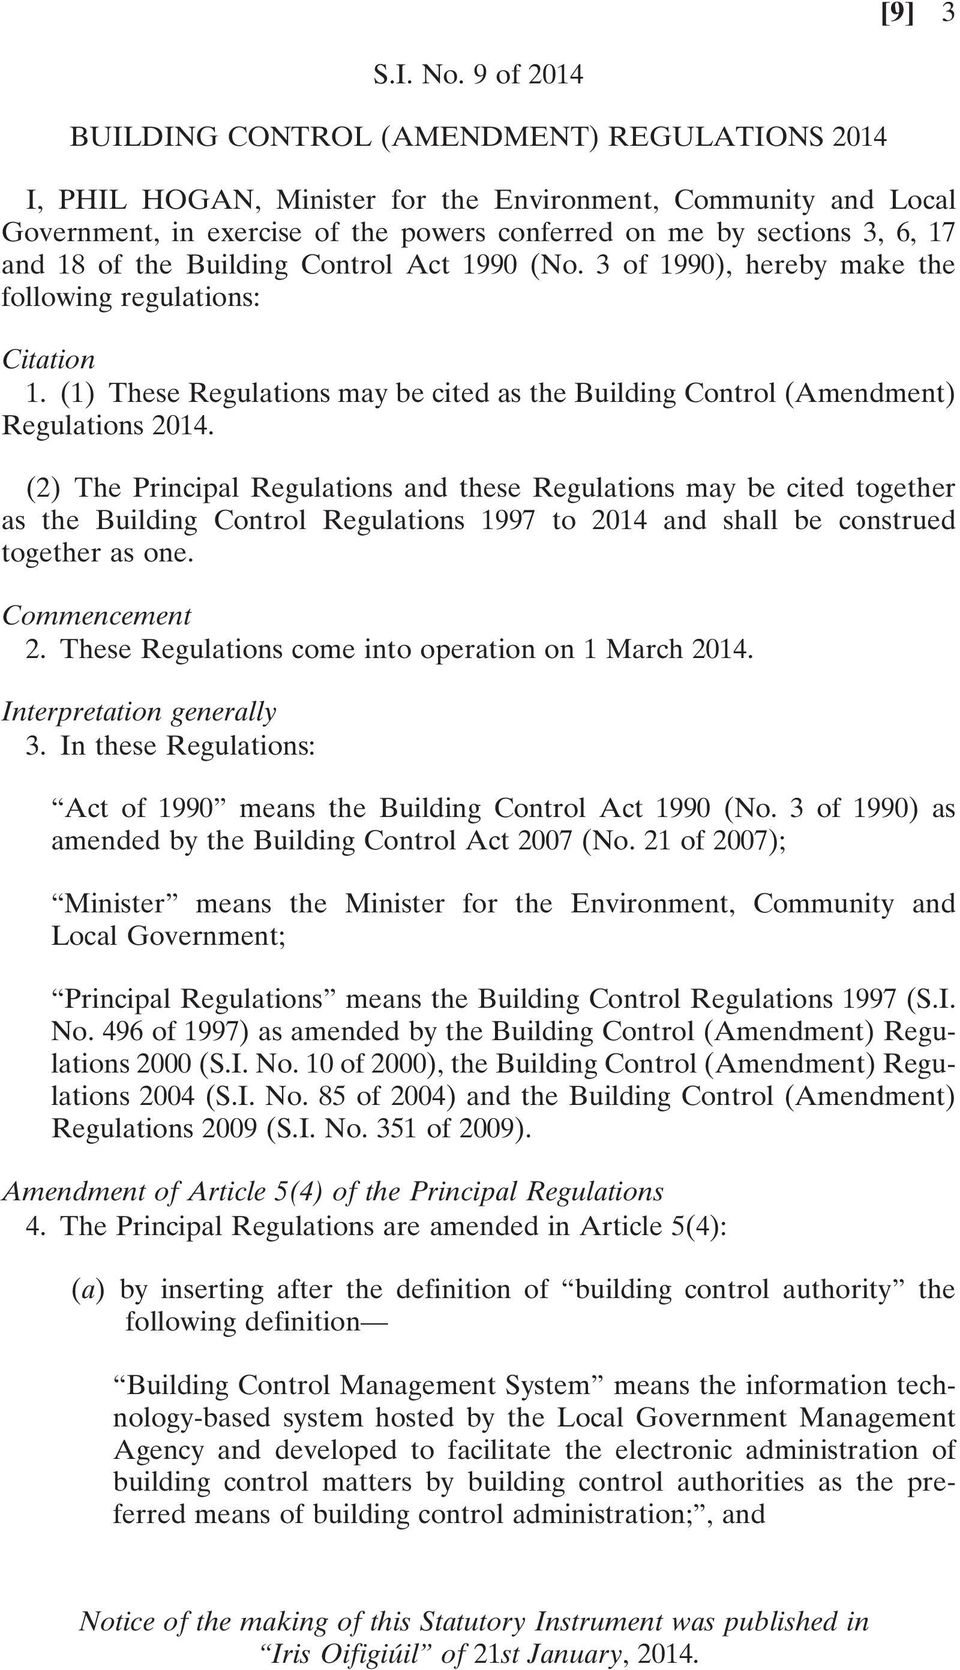 18 of the Building Control Act 1990 (No. 3 of 1990), hereby make the following regulations: Citation 1. (1) These Regulations may be cited as the Building Control (Amendment) Regulations 2014.